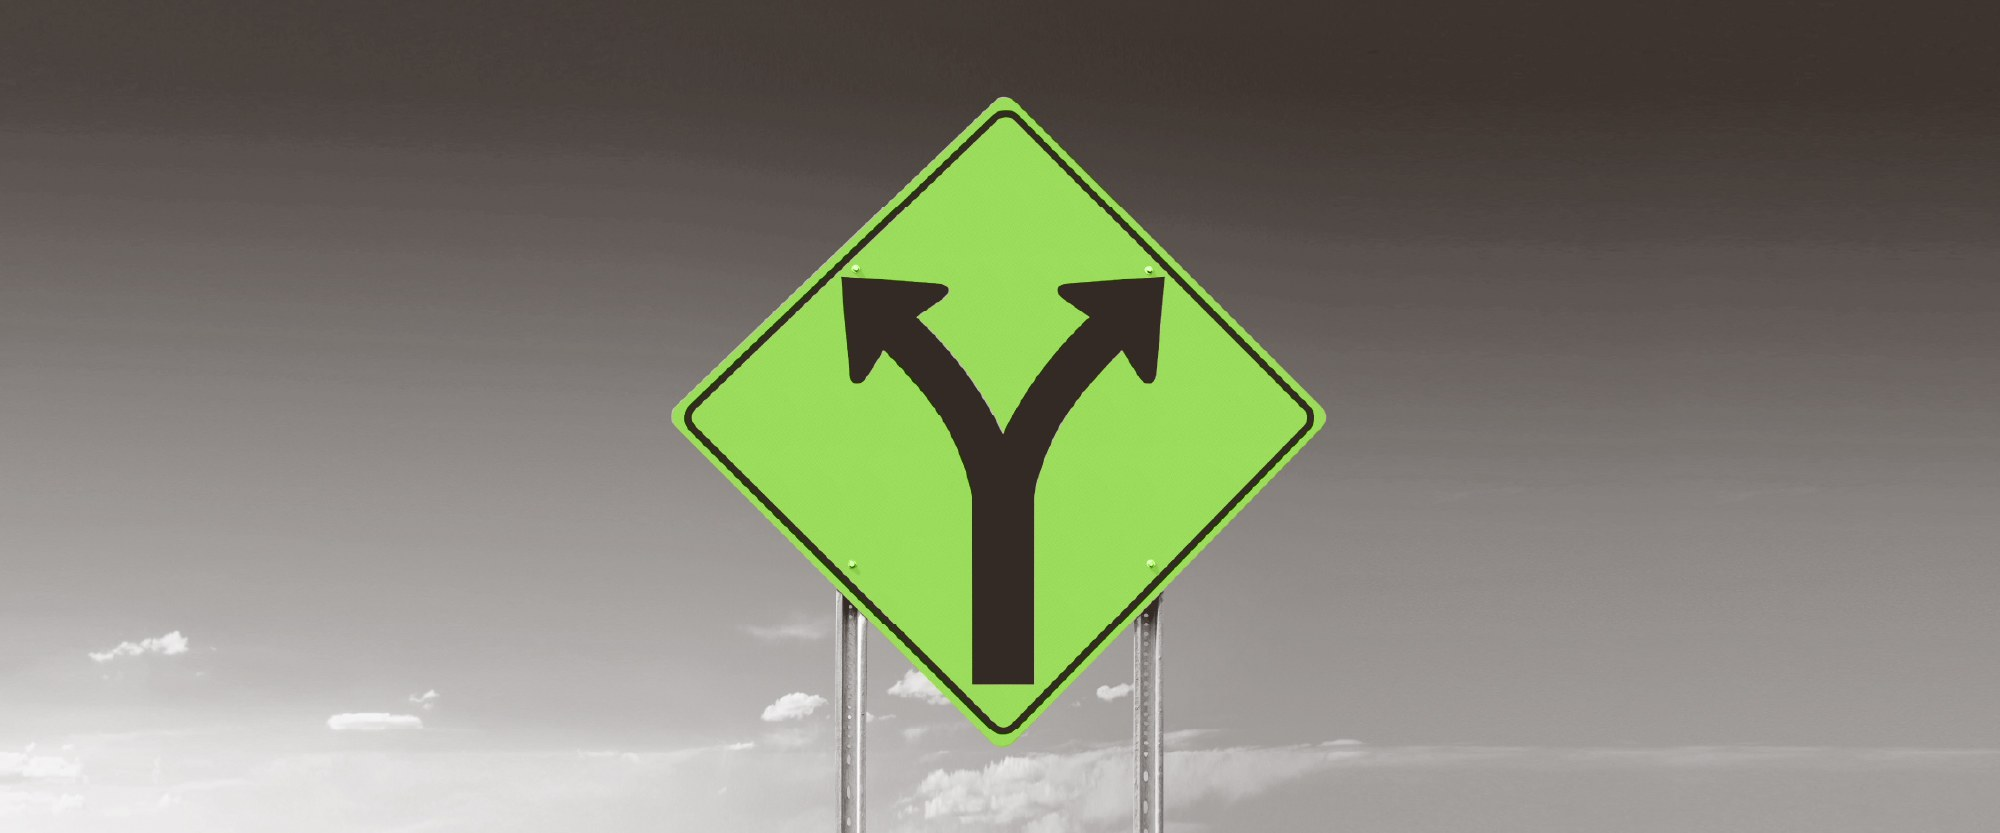 green road sign with 2 options to turn right or left